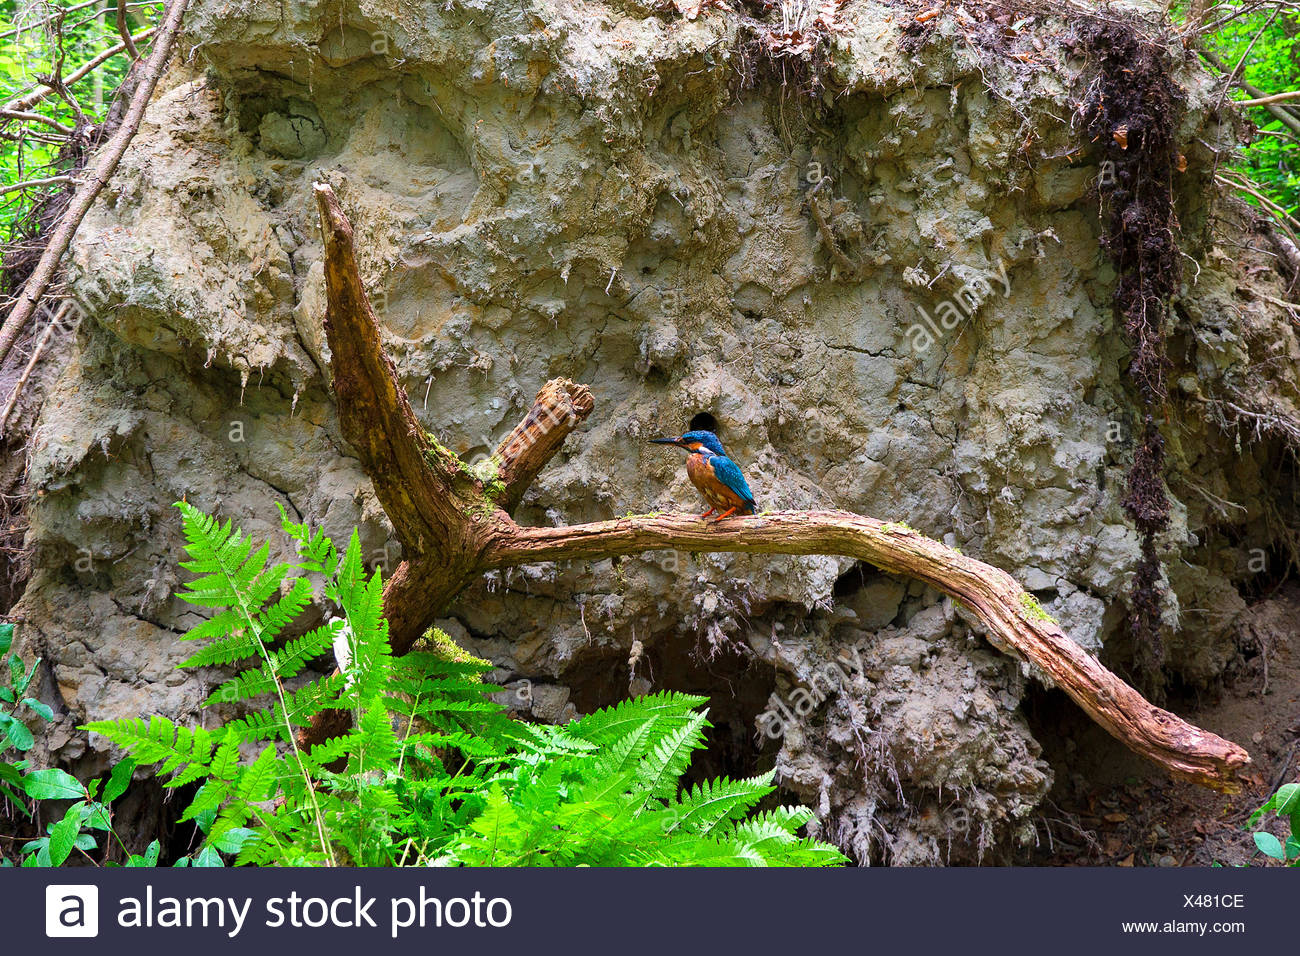 river kingfisher (Alcedo atthis), in front of the breeding cave in the roots of a fallen tree, Germany, North Rhine-Westphalia - Stock Image